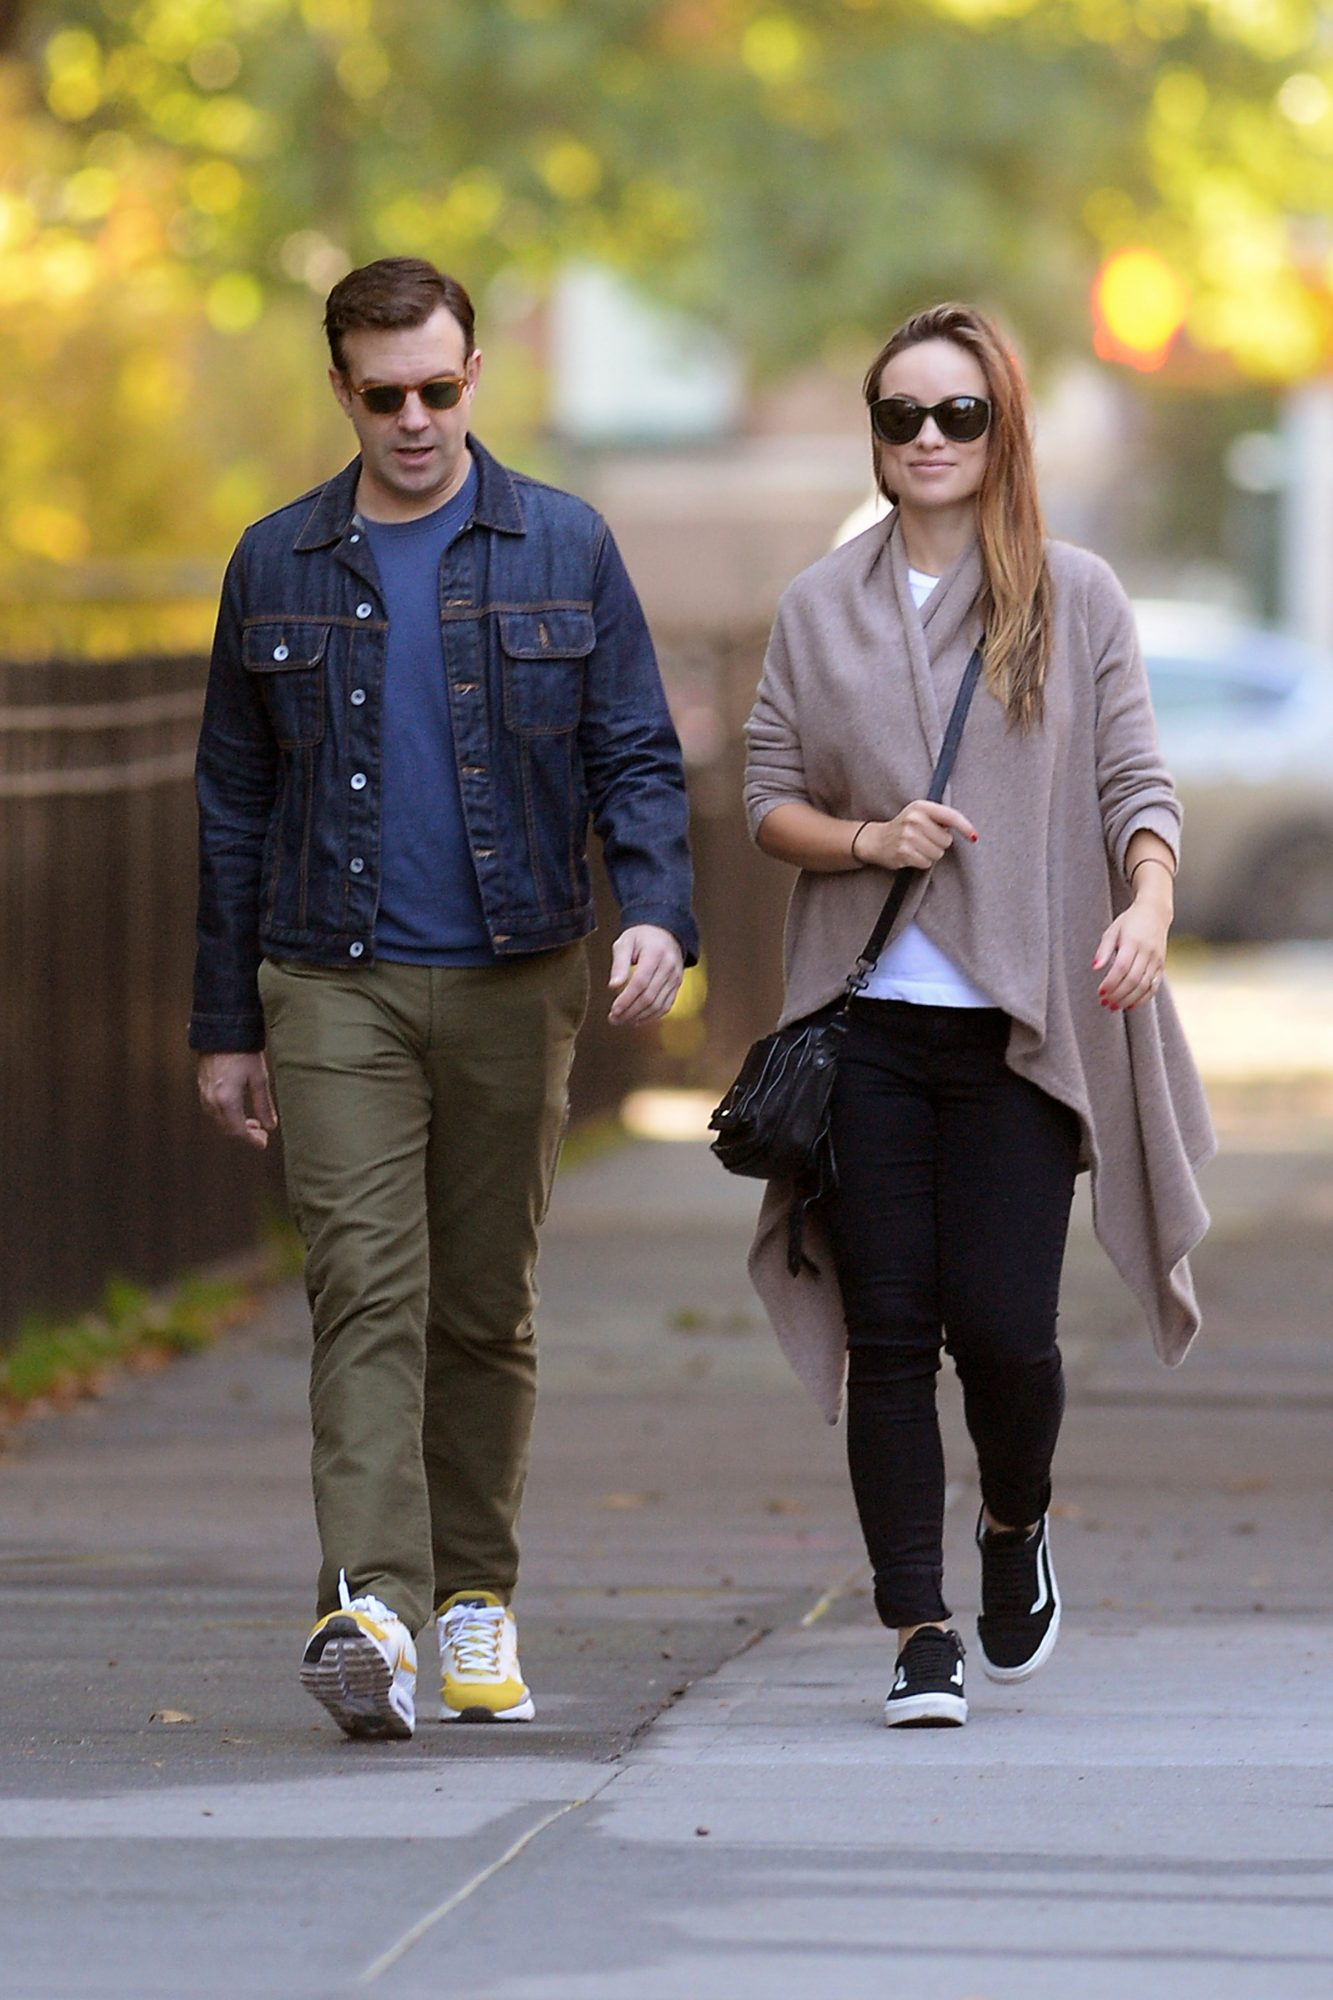 Olivia Wilde Out With Jason Sudeikis Less Than 1 Week After Giving Birth To Daughter Daisy